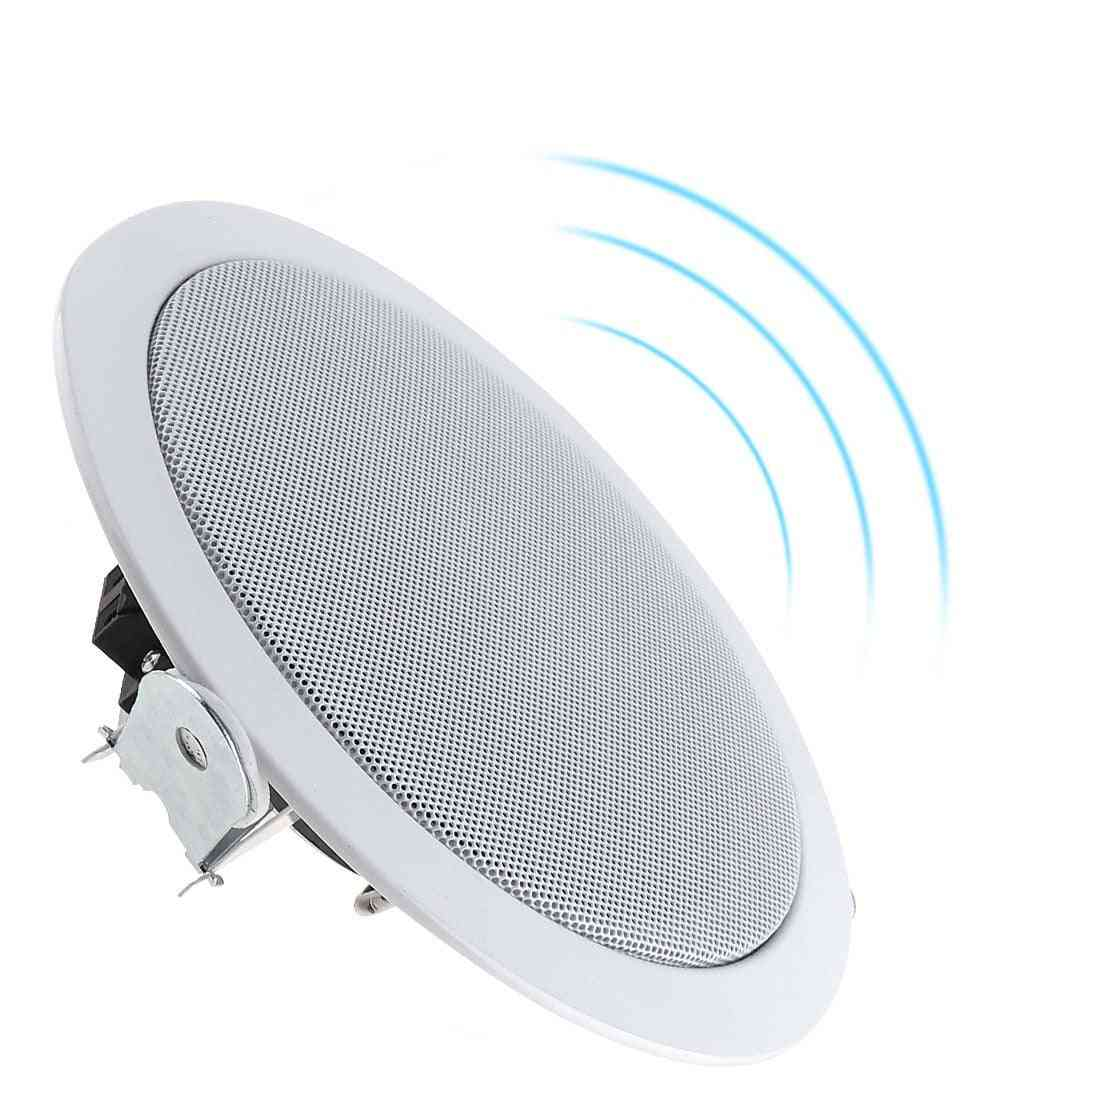 15w, 6 Inch Wall-mounted Ceiling Speaker For Home/restaurant